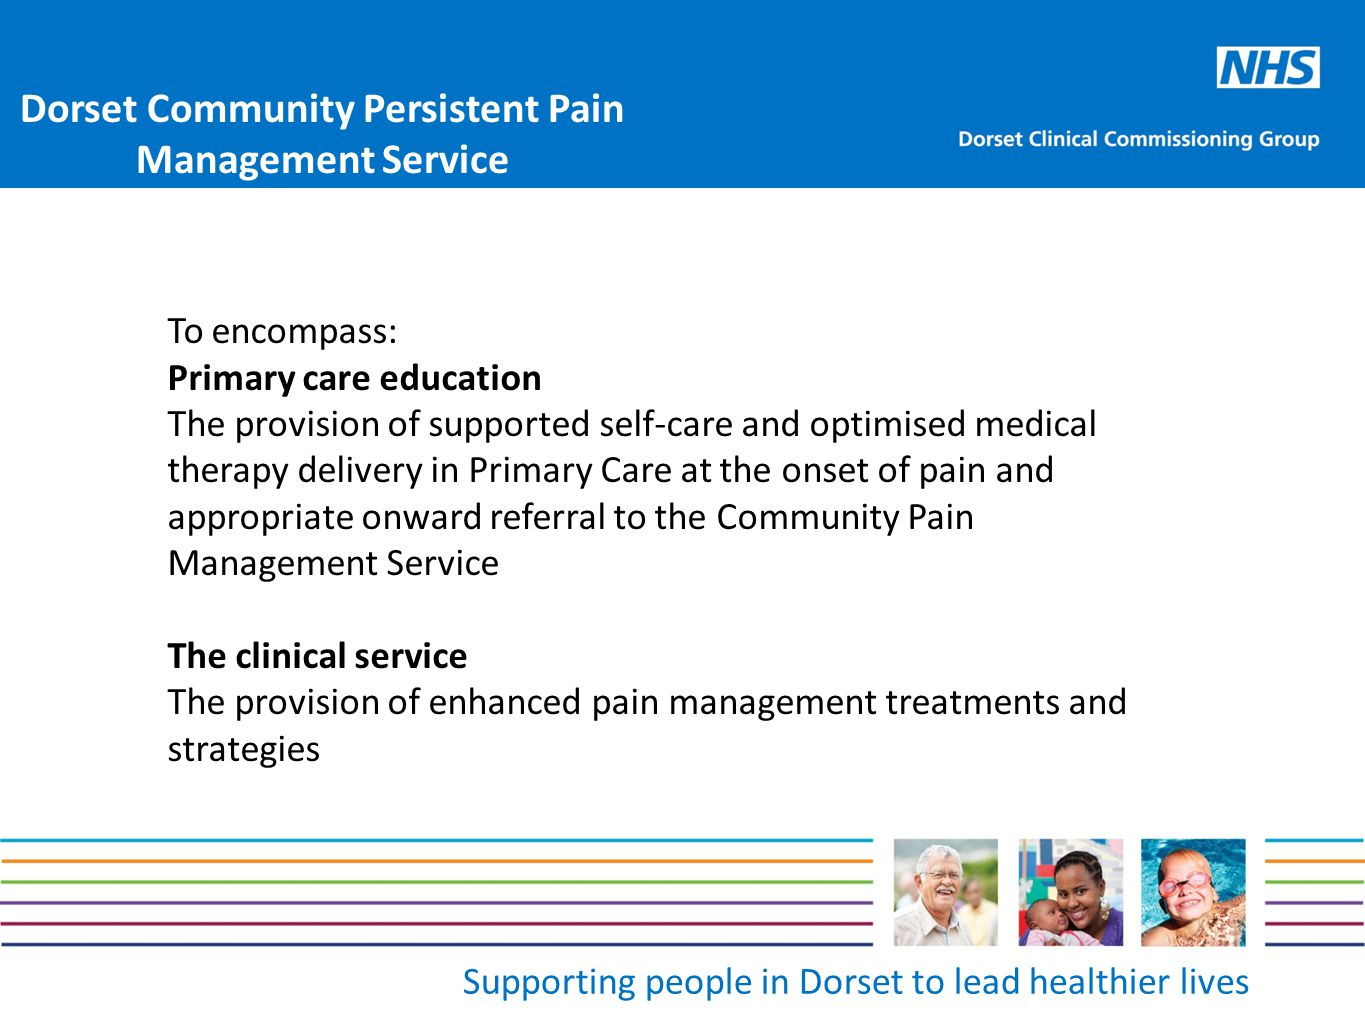 Supporting people in Dorset to lead healthier lives To encompass: Primary care education The provision of supported self-care and optimised medical therapy delivery in Primary Care at the onset of pain and appropriate onward referral to the Community Pain Management Service The clinical service The provision of enhanced pain management treatments and strategies Dorset Community Persistent Pain Management Service